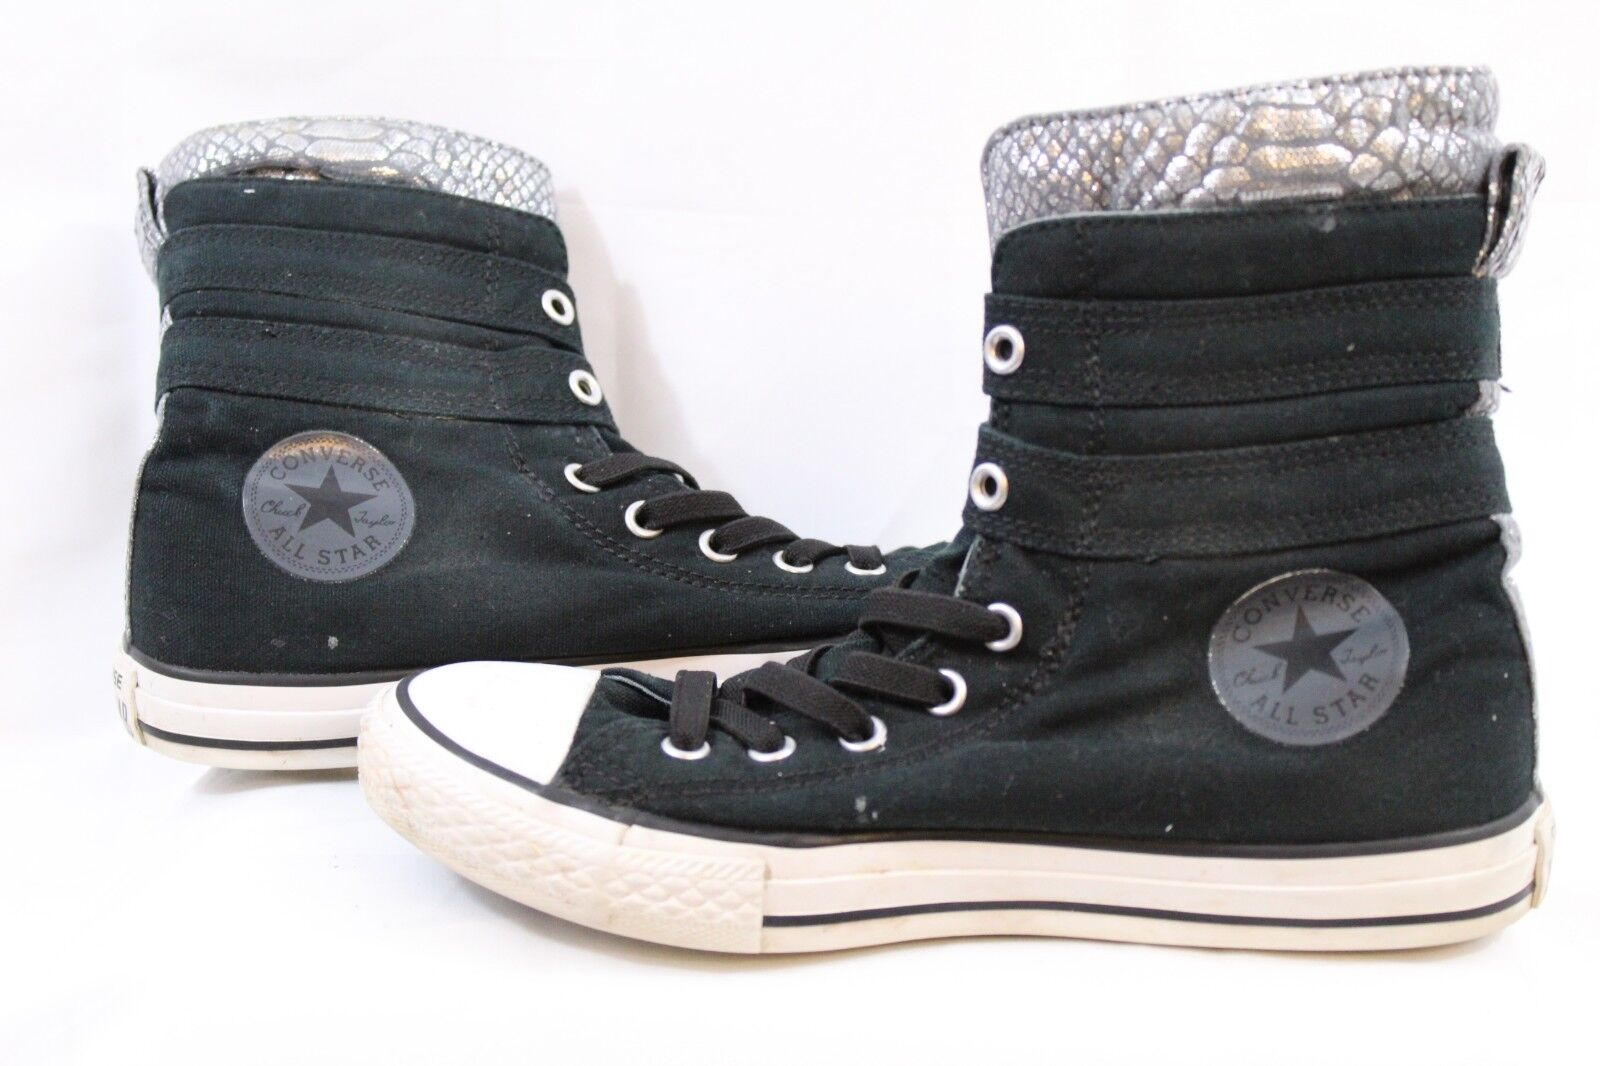 WOMEN'S CHUCK TAYLOR ALL STARS FASHION HIGH TOP BLACK/SILVER SIZE 4